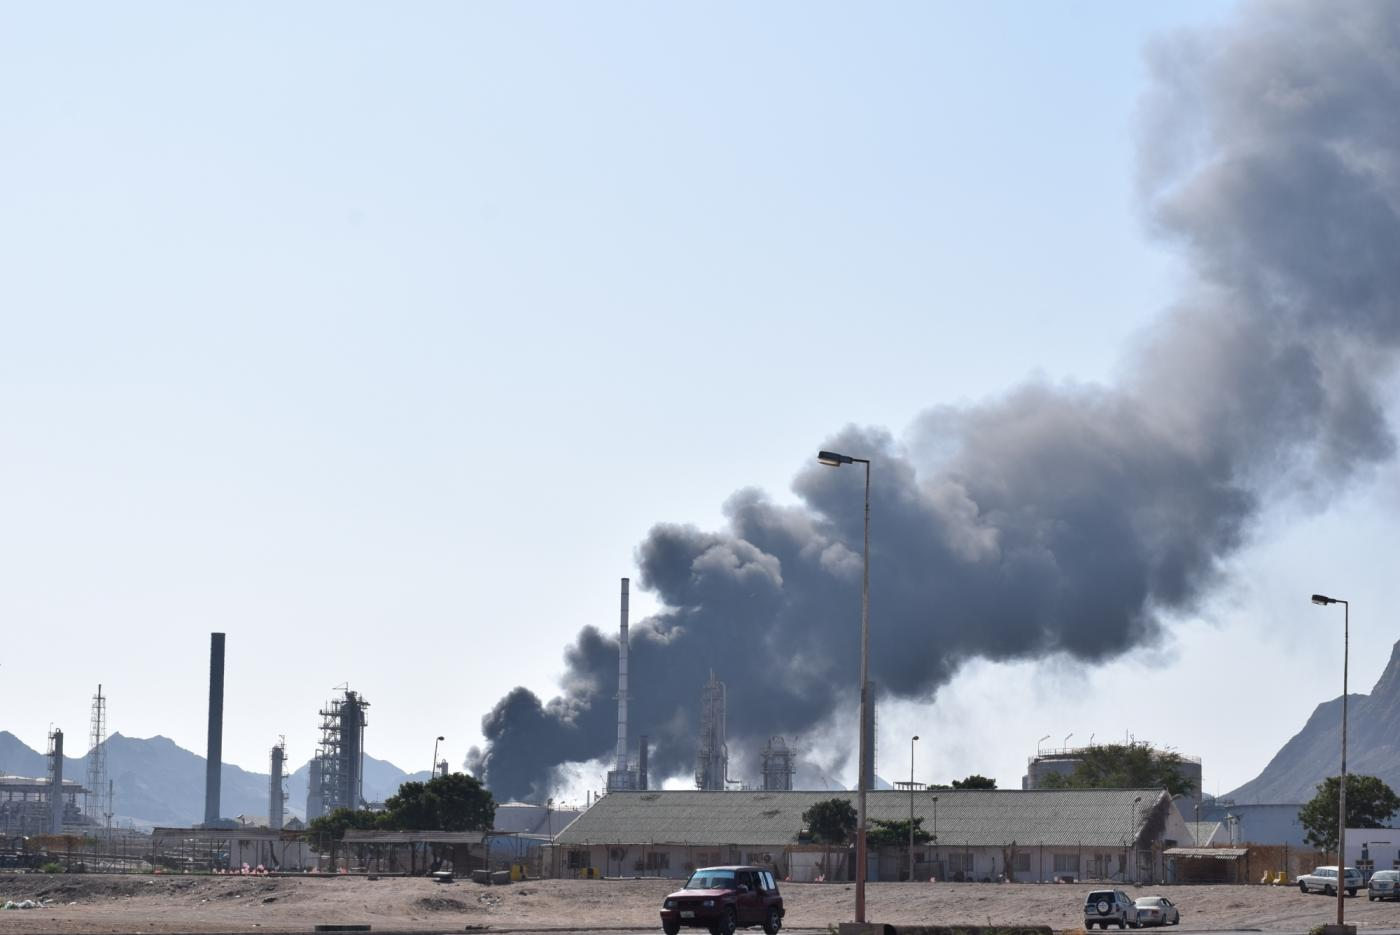 ADEN, Jan. 12, 2019 (Xinhua) -- Photo taken on Jan. 12, 2019 shows heavy smoke at a state-owned oil refinery company in Aden, Yemen, on Jan. 12, 2019. A huge fire broke out on Friday evening at the state-owned oil refinery company in Yemen's southern port city of Aden, causing no casualties. (Xinhua/Murad Abdo/IANS) by .